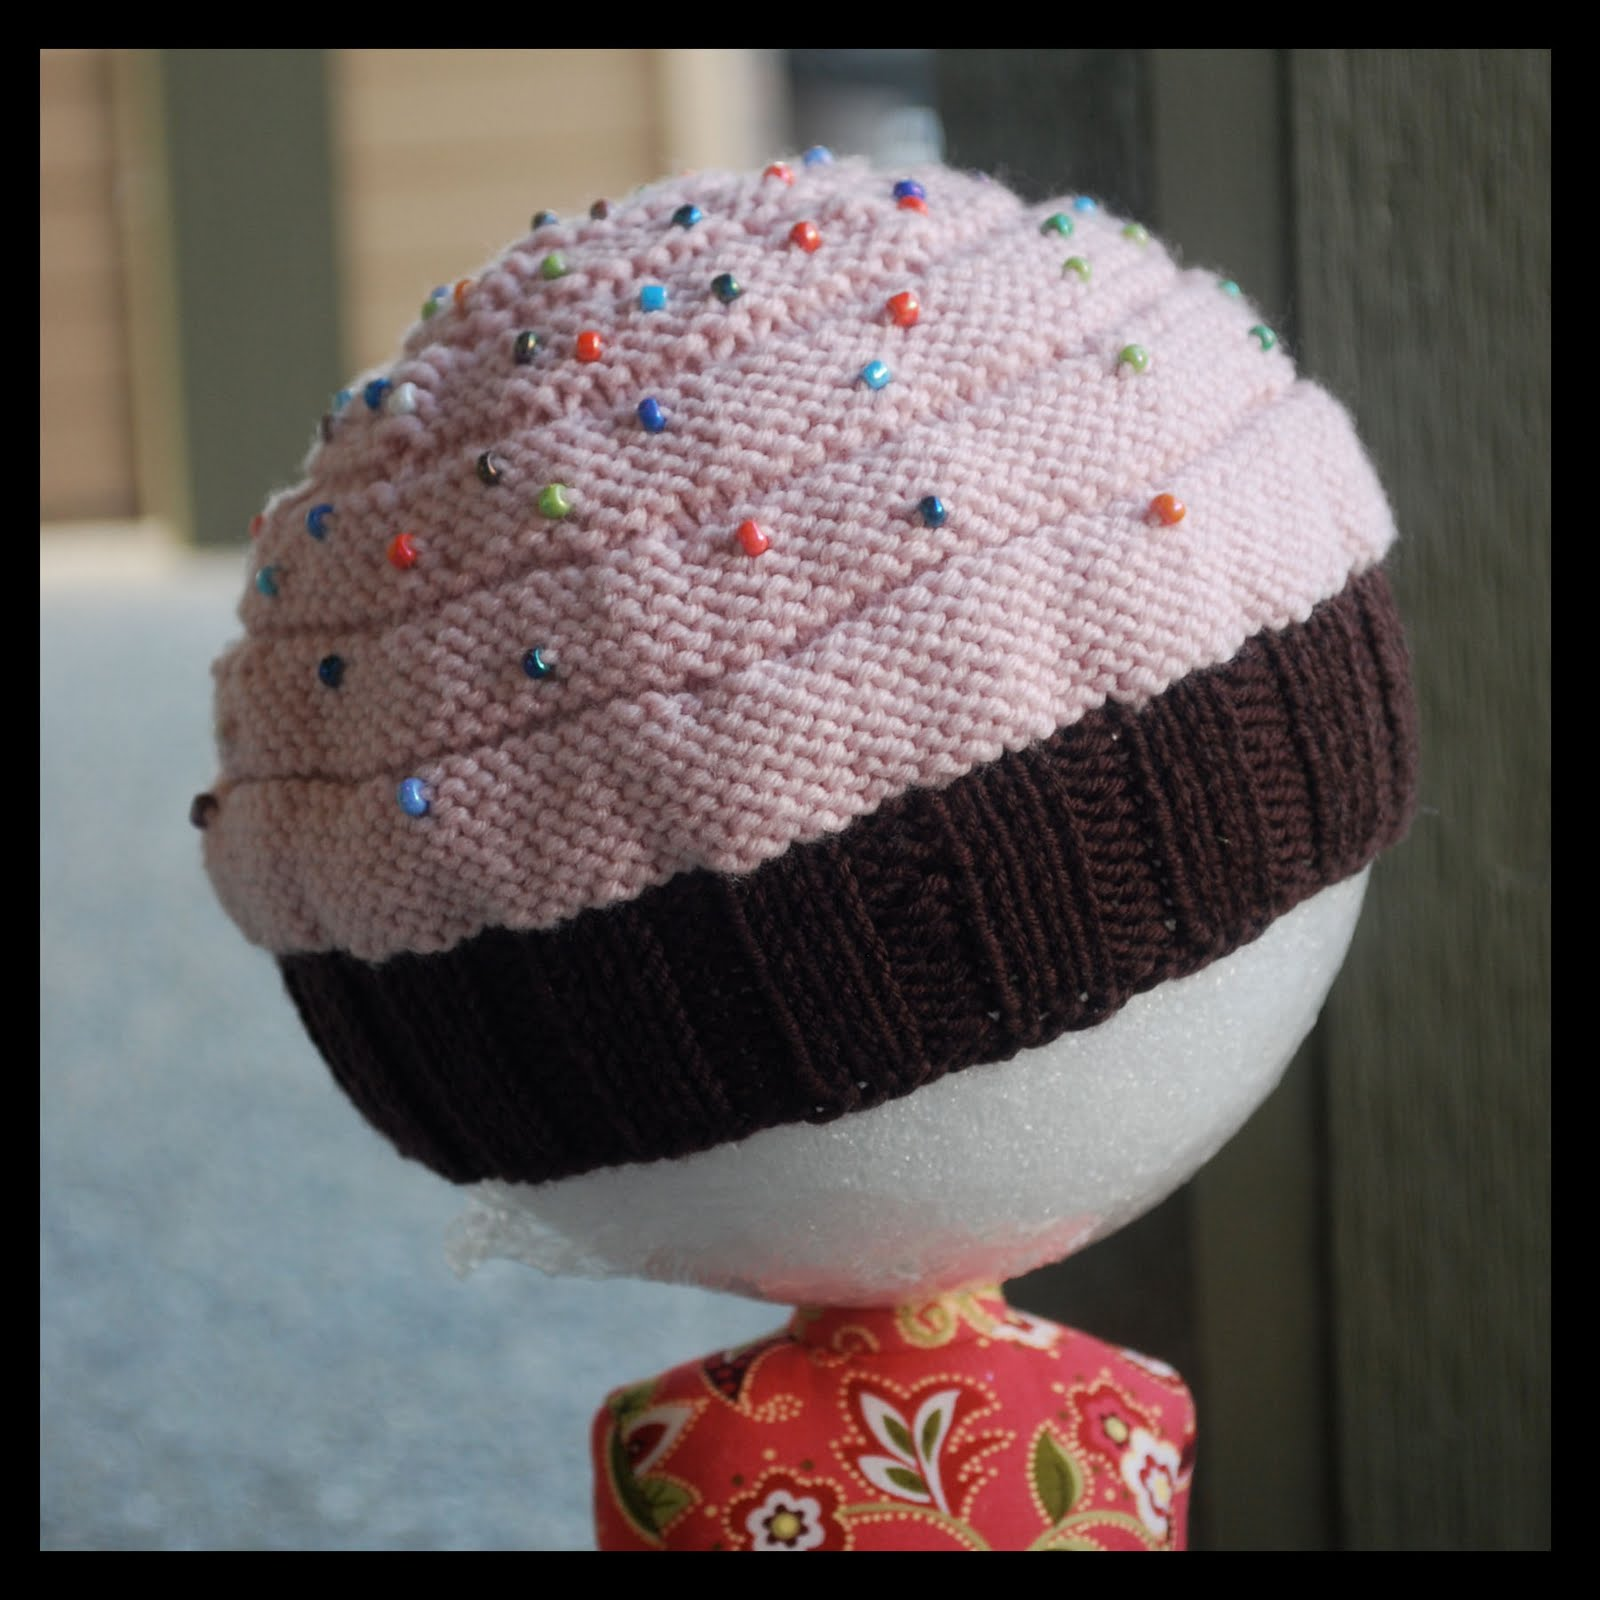 Knitted Cupcake Hat Pattern : Nip Cancer Girls: Knit Cupcake Hat Take Two